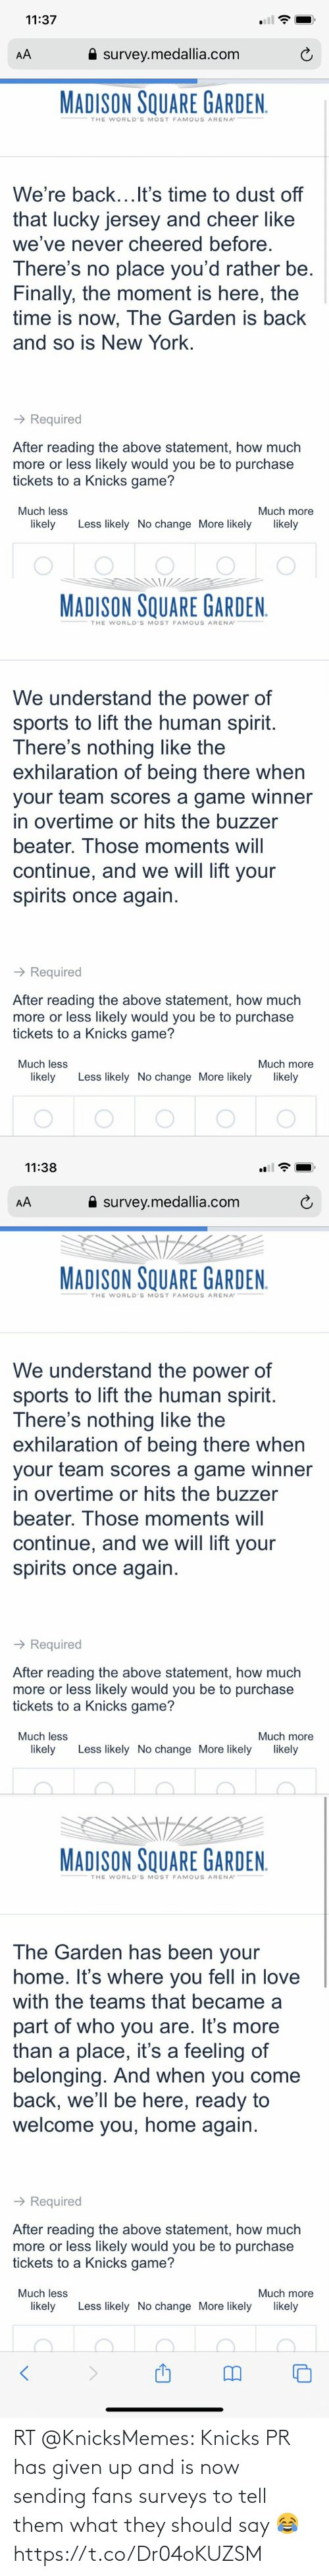 Has: RT @KnicksMemes: Knicks PR has given up and is now sending fans surveys to tell them what they should say 😂 https://t.co/Dr04oKUZSM